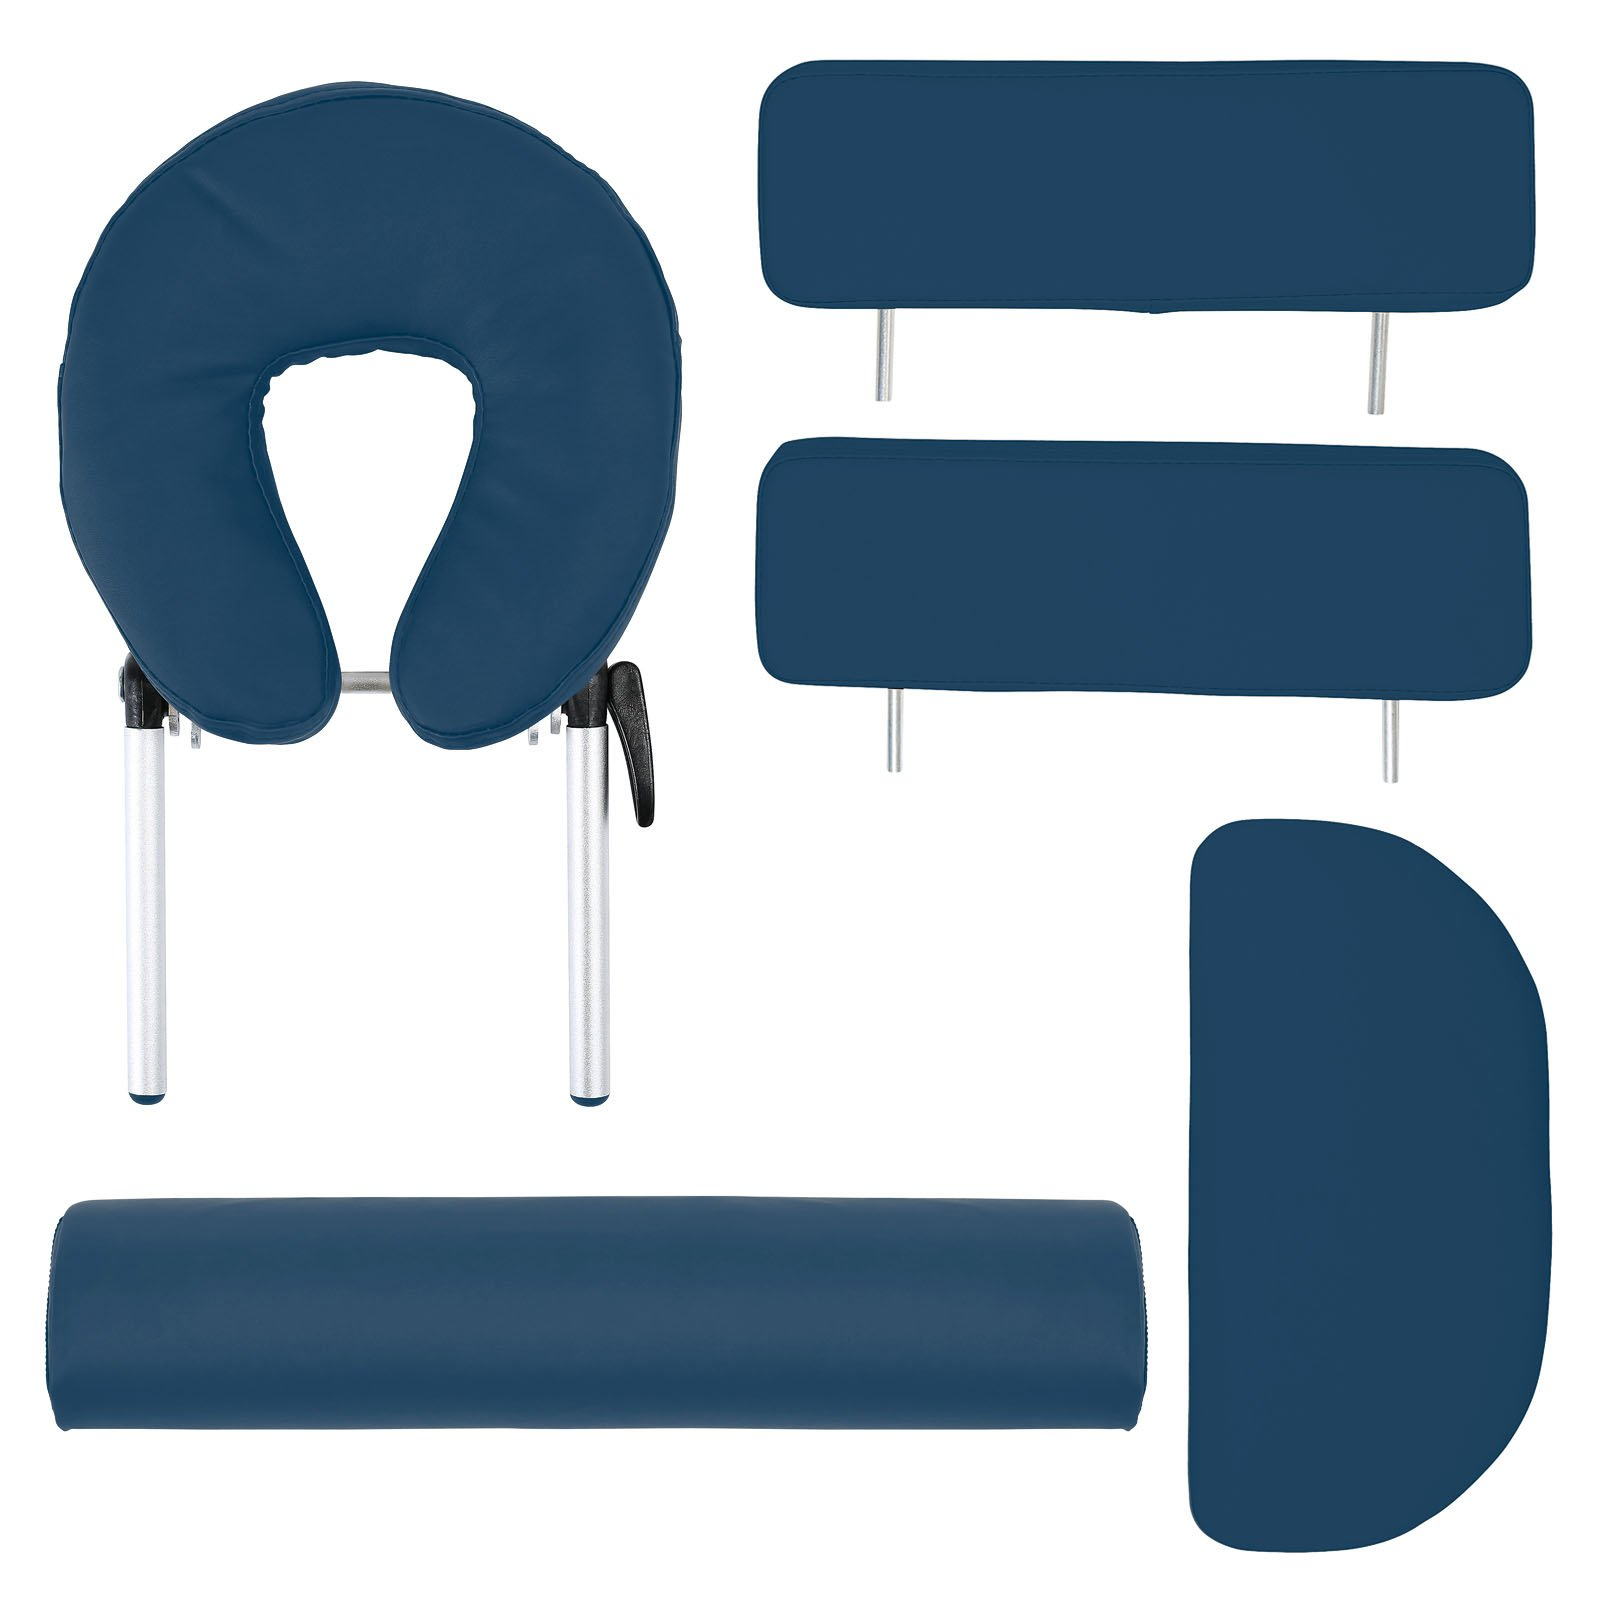 Saloniture Professional Portable Massage Table with Backrest - Blue by Saloniture (Image #4)